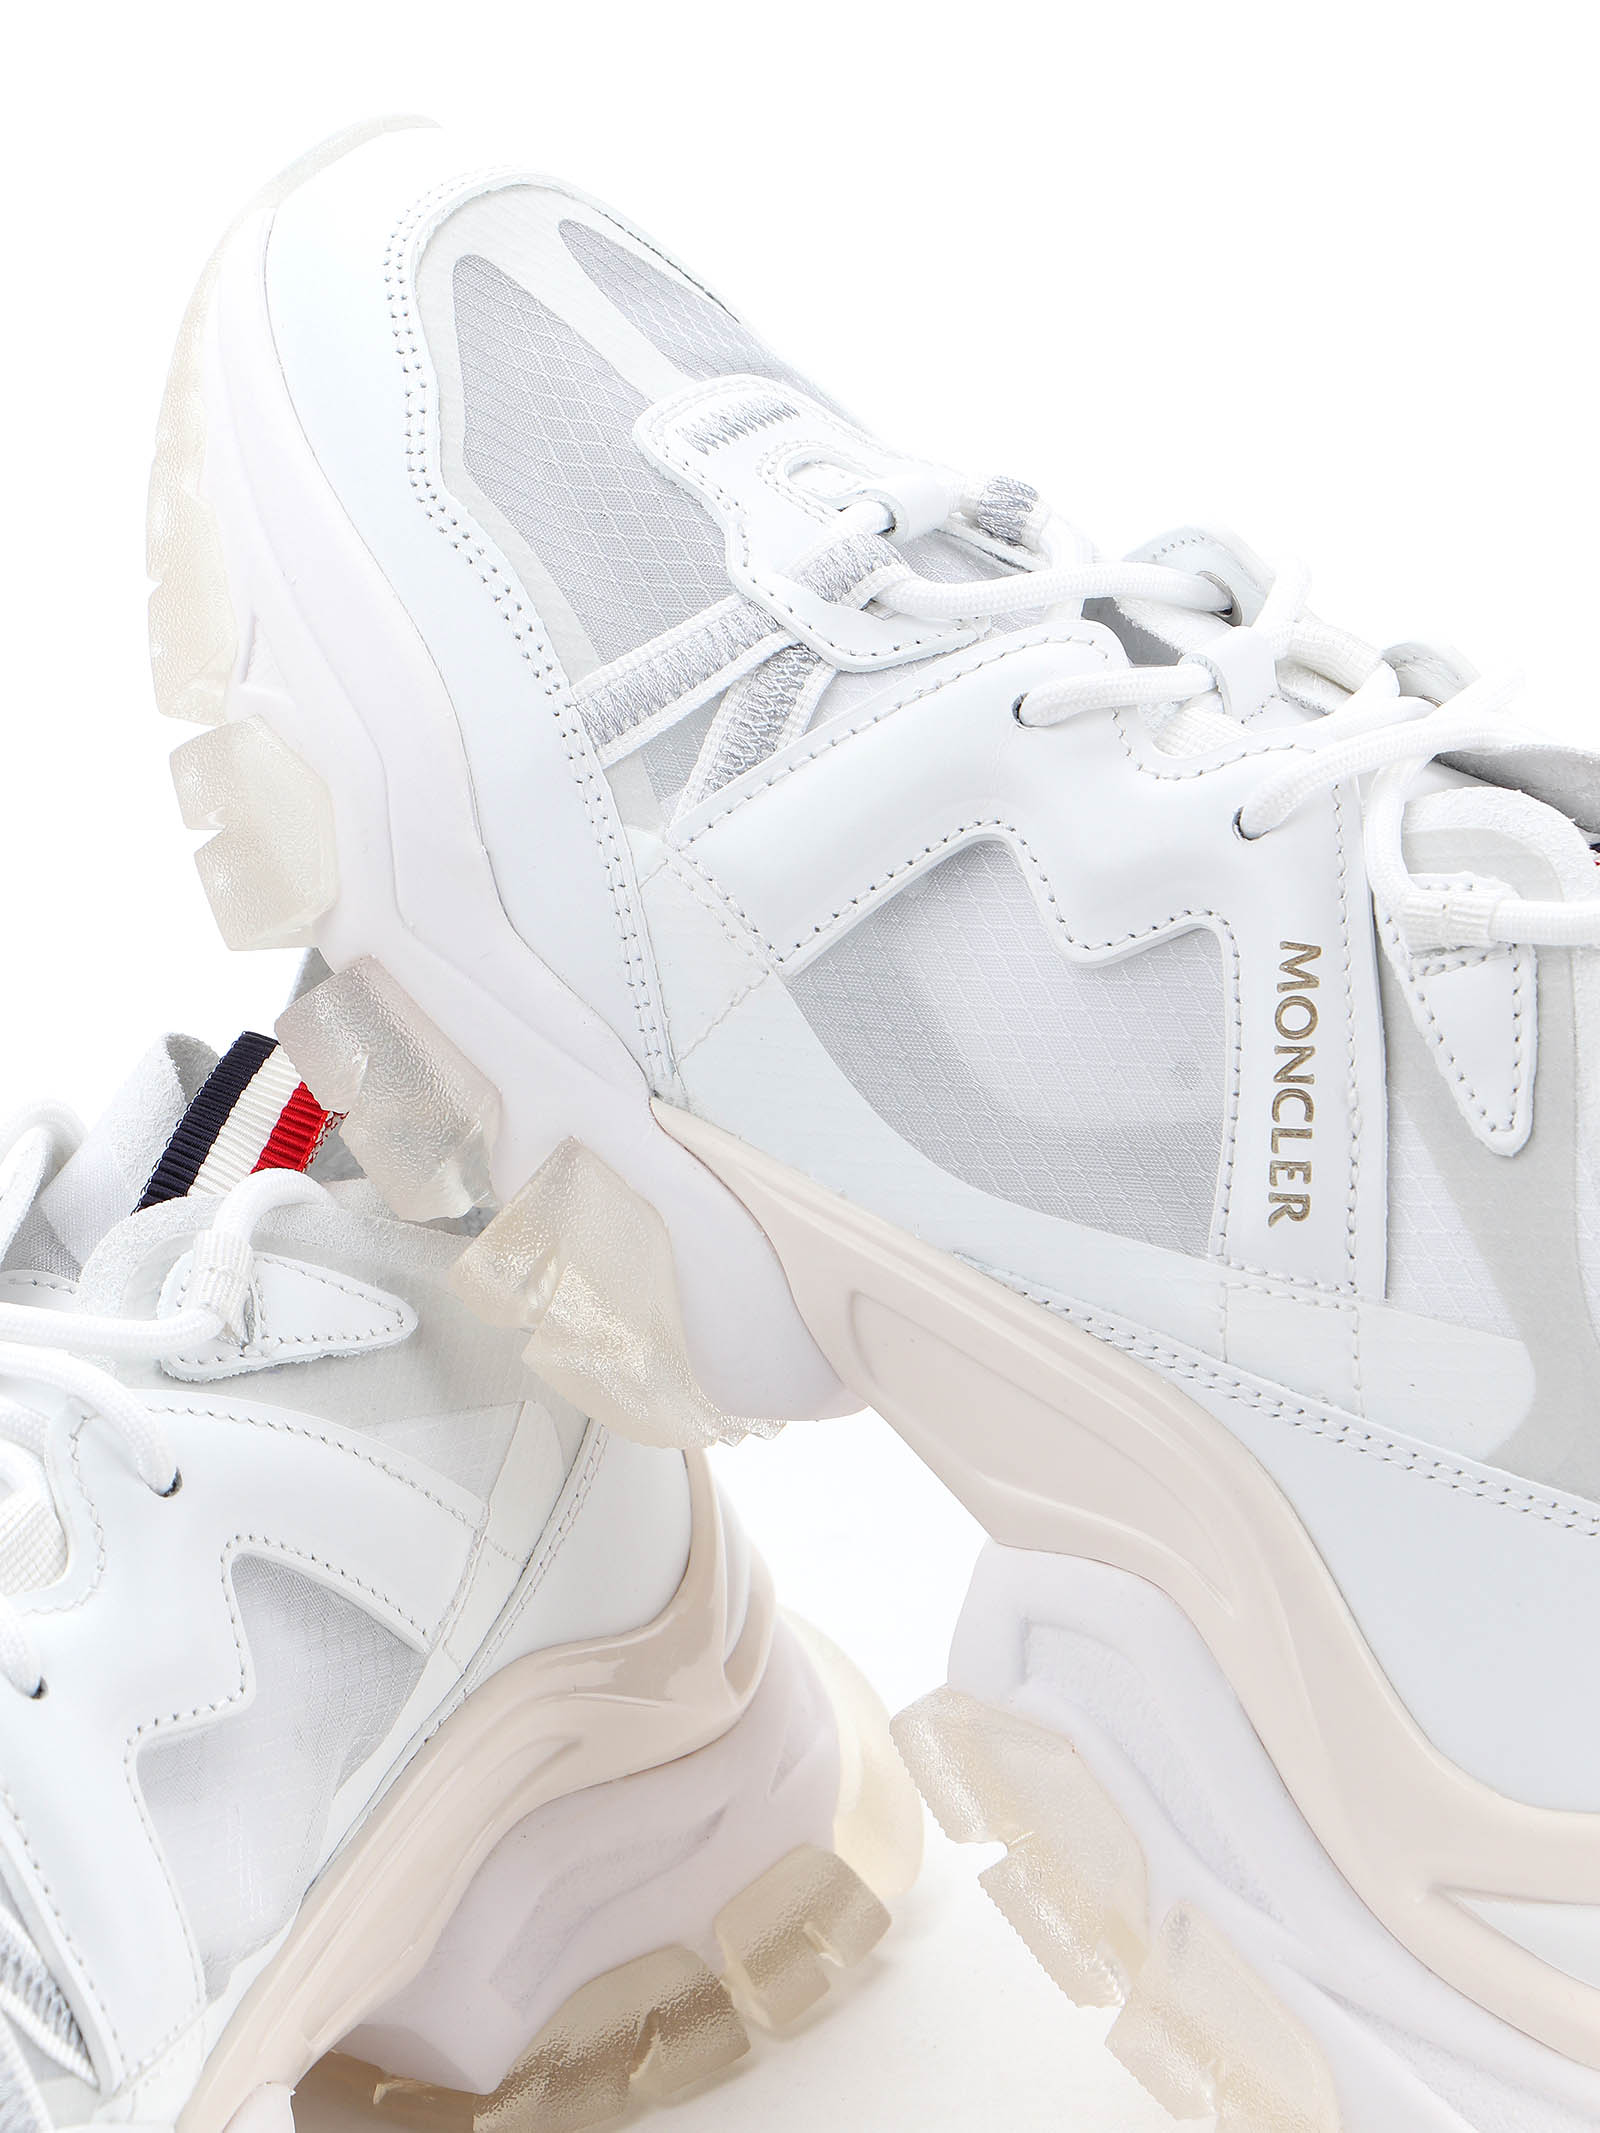 Picture of Moncler | Leave No Trace Sneaker